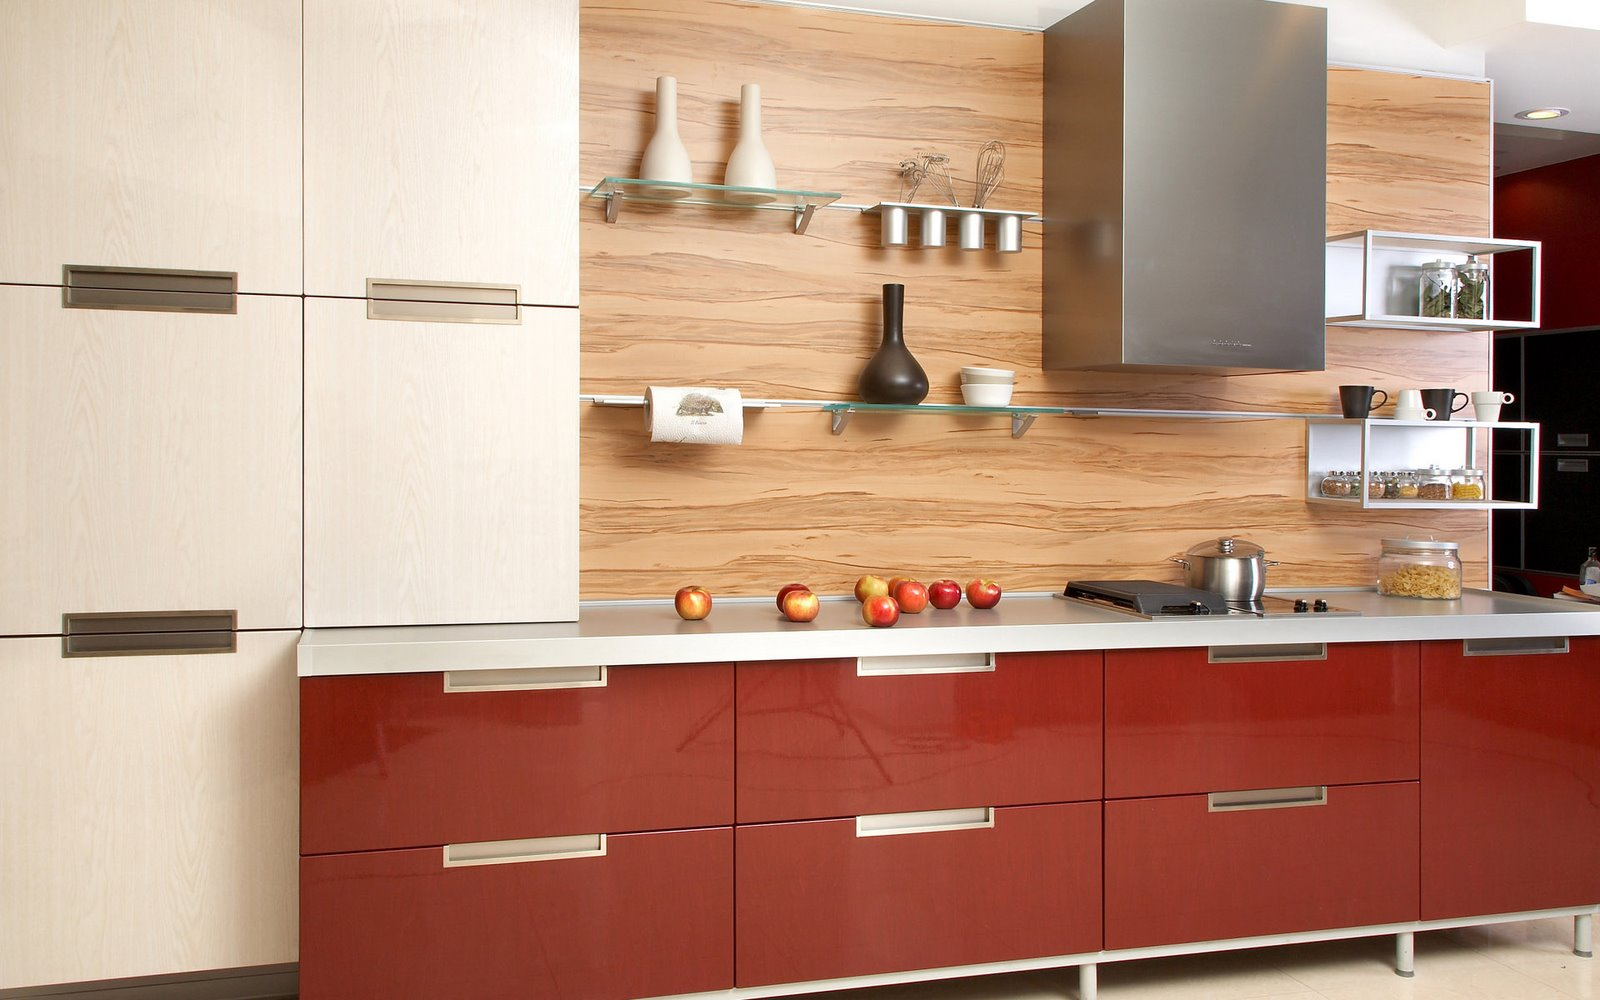 Modern Wood Kitchen Design Dream Kitchens Pinterest Kitchen Designs Kitchens And Open: new contemporary kitchen design